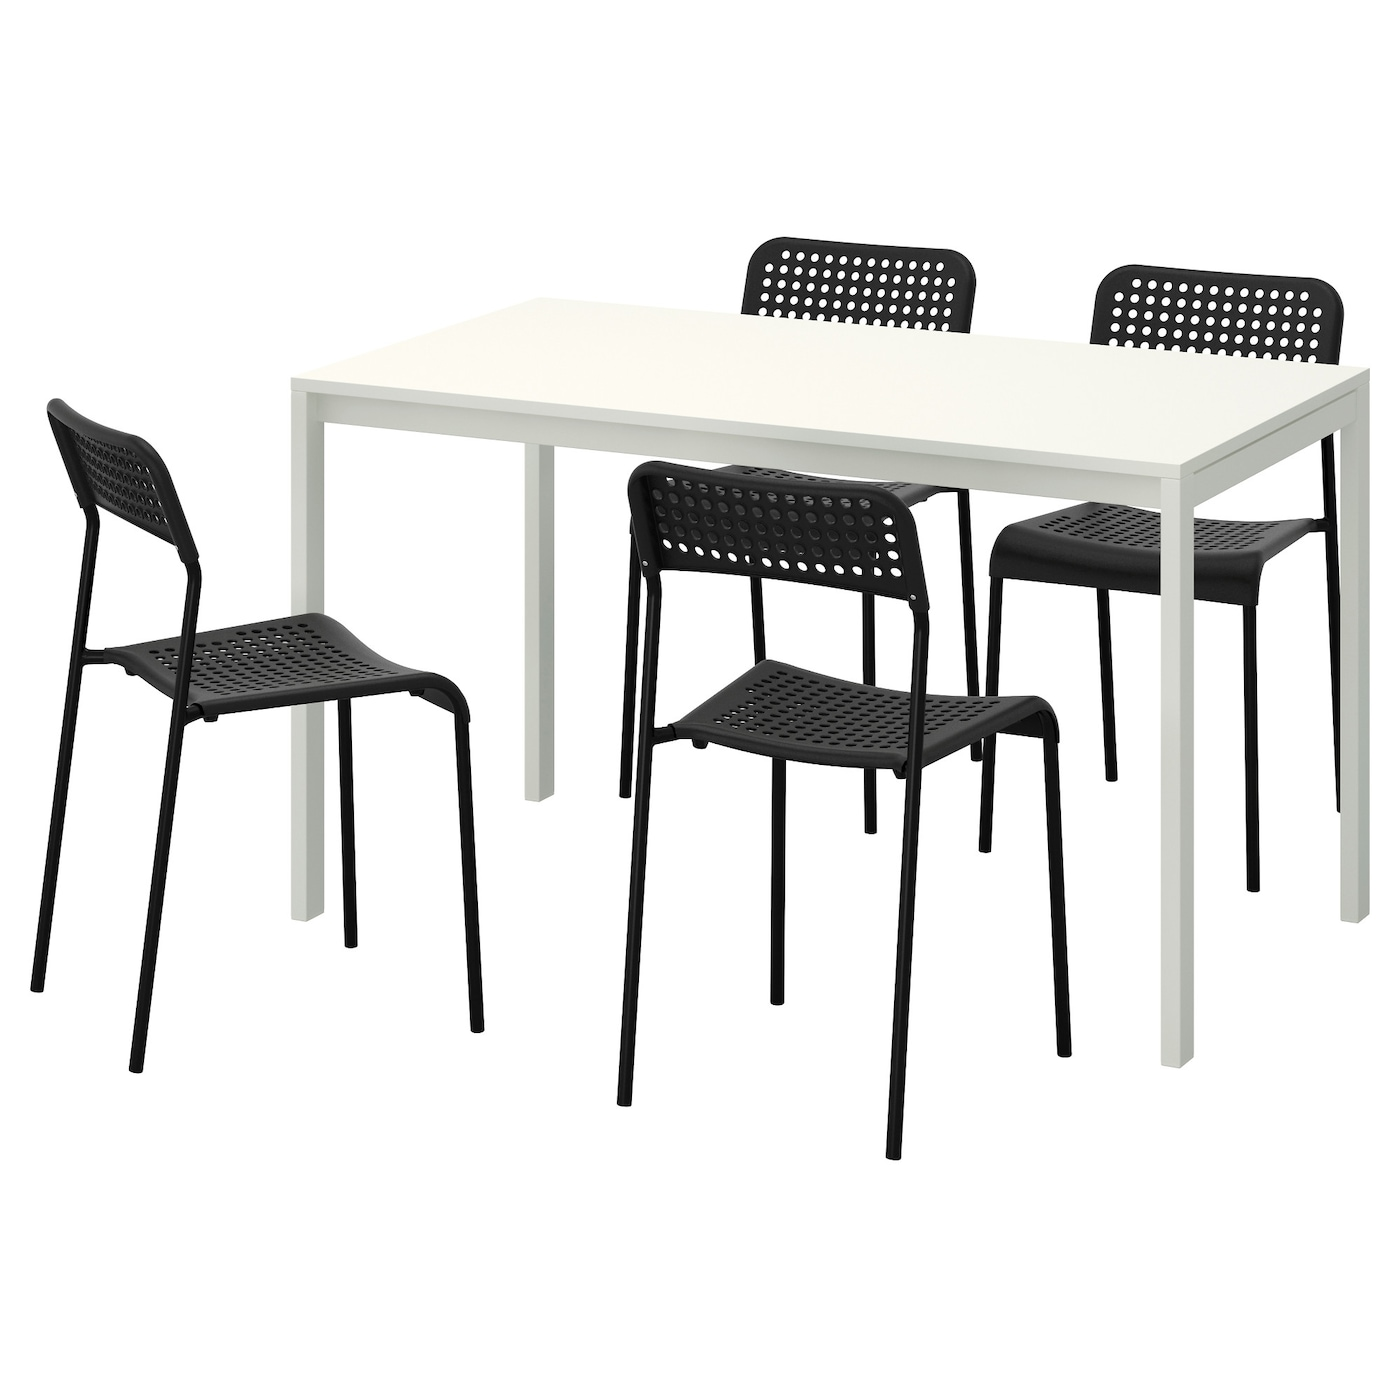 Ikea Melltorp Adde Table And 4 Chairs